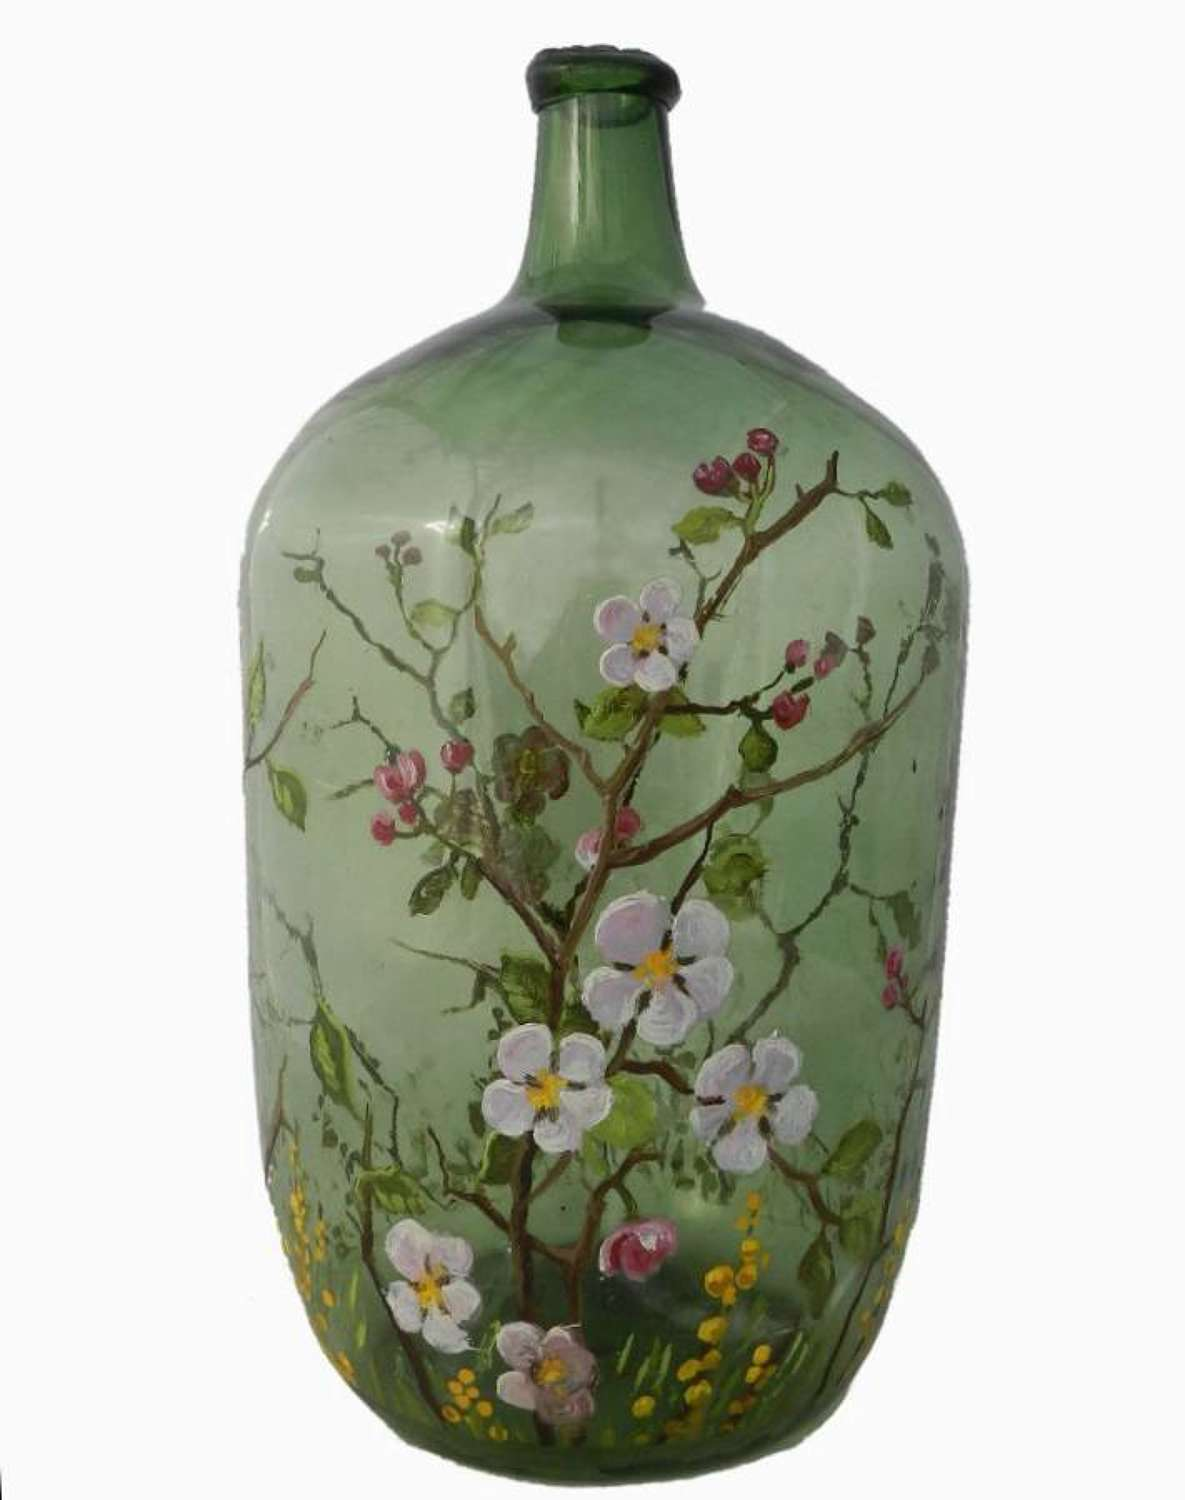 C19 French Wine Hand Painted Hand Blown Green Glass Carboy Demijohn